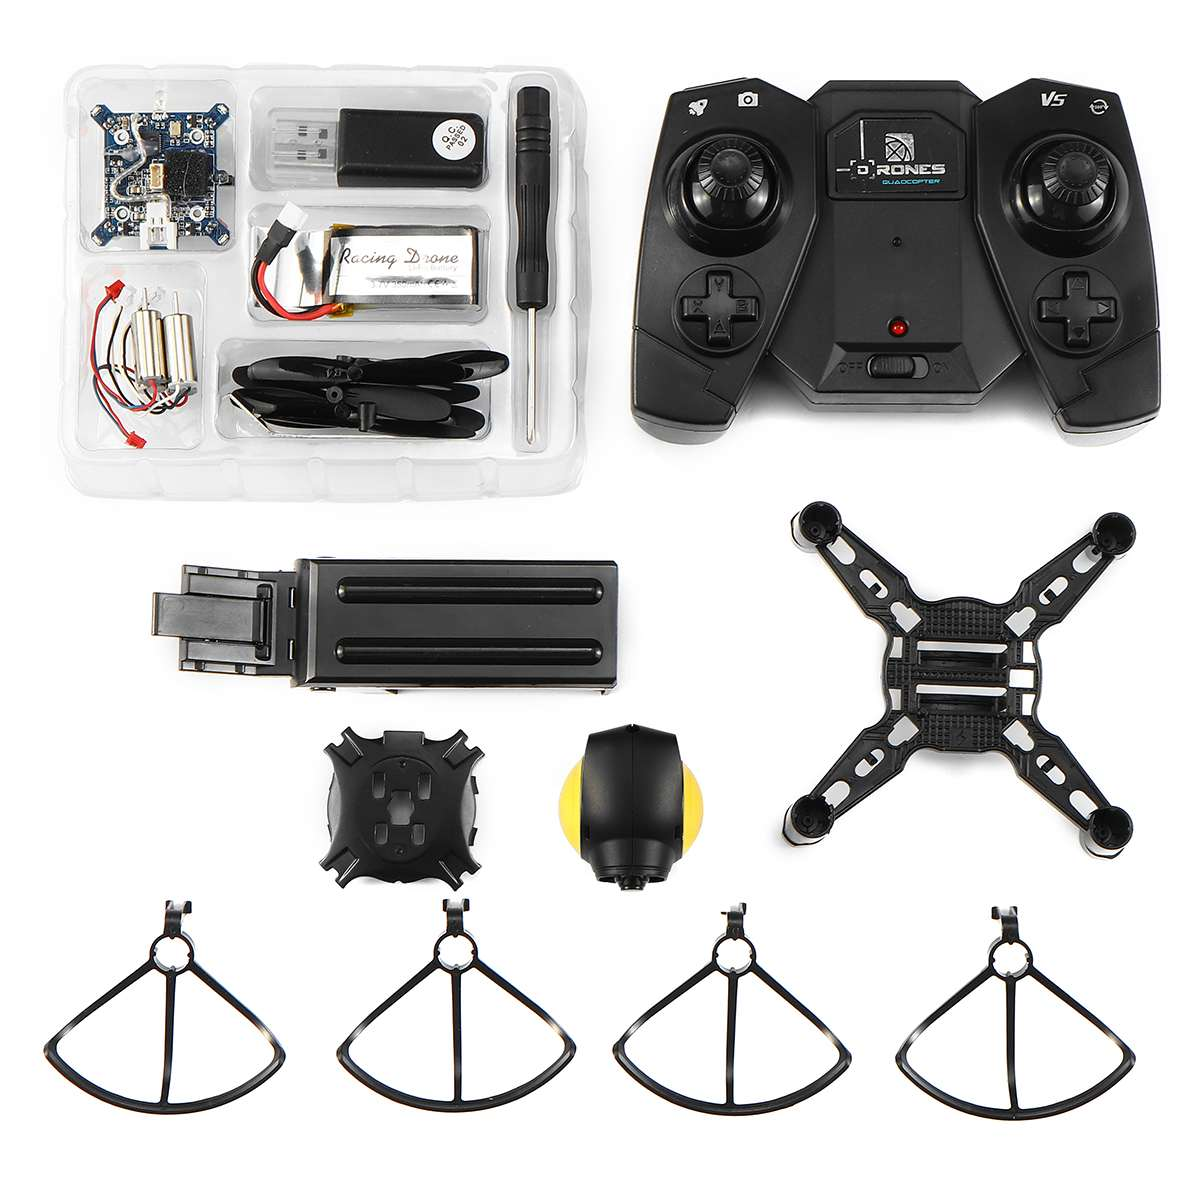 Camera Altitude DIY Drone WIFI FPV 2MP Hold One Key Return RC Battle Quadcopter Black with Yellow Stable Flight Lightweight Kit